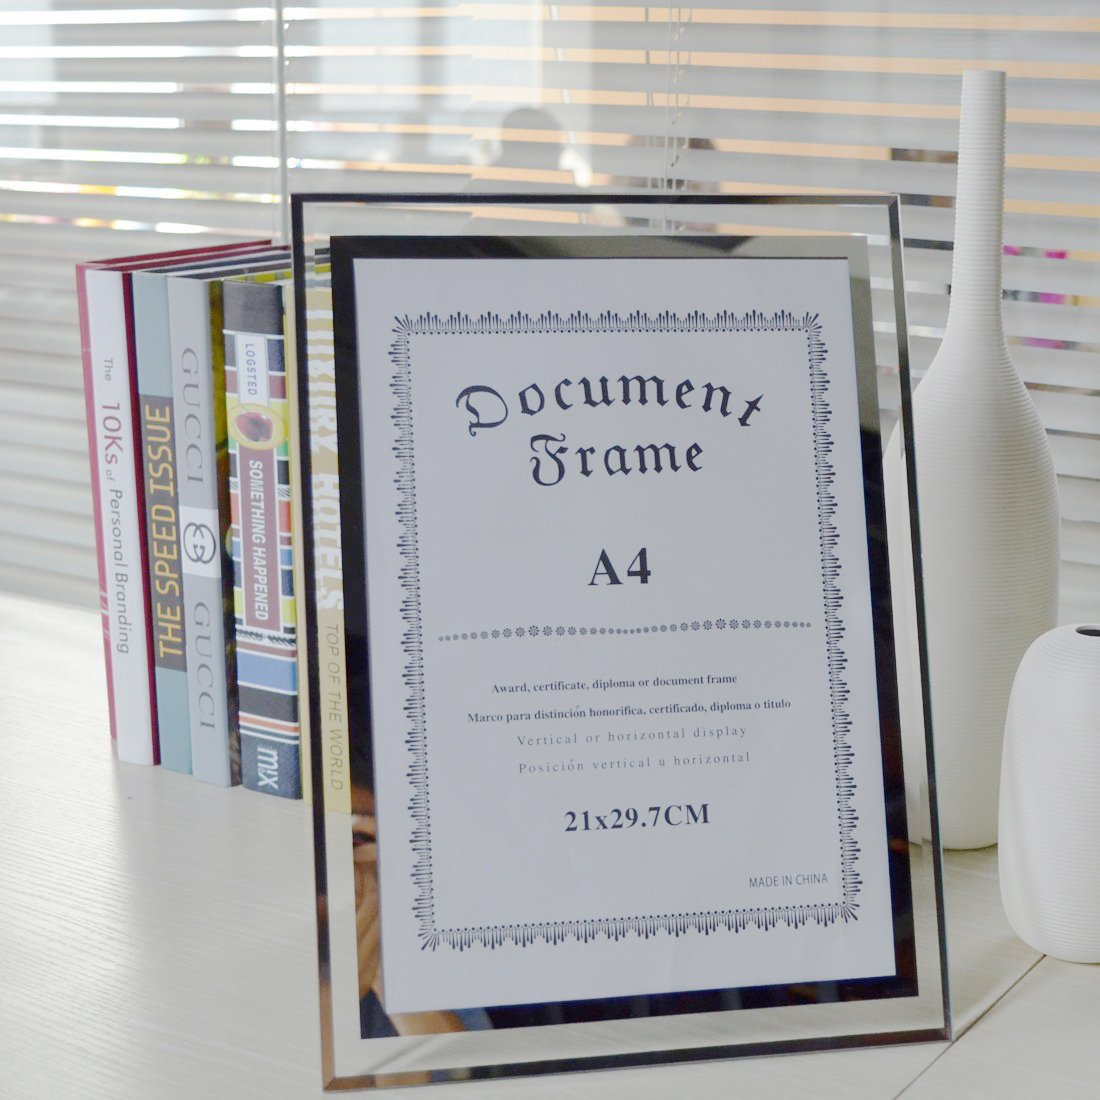 MAYMII Made to Display Certificates 8.5x11 Inch A4 Size Document Certificate Picture Standard Paper Glass Frame Frames by Maymii•Home